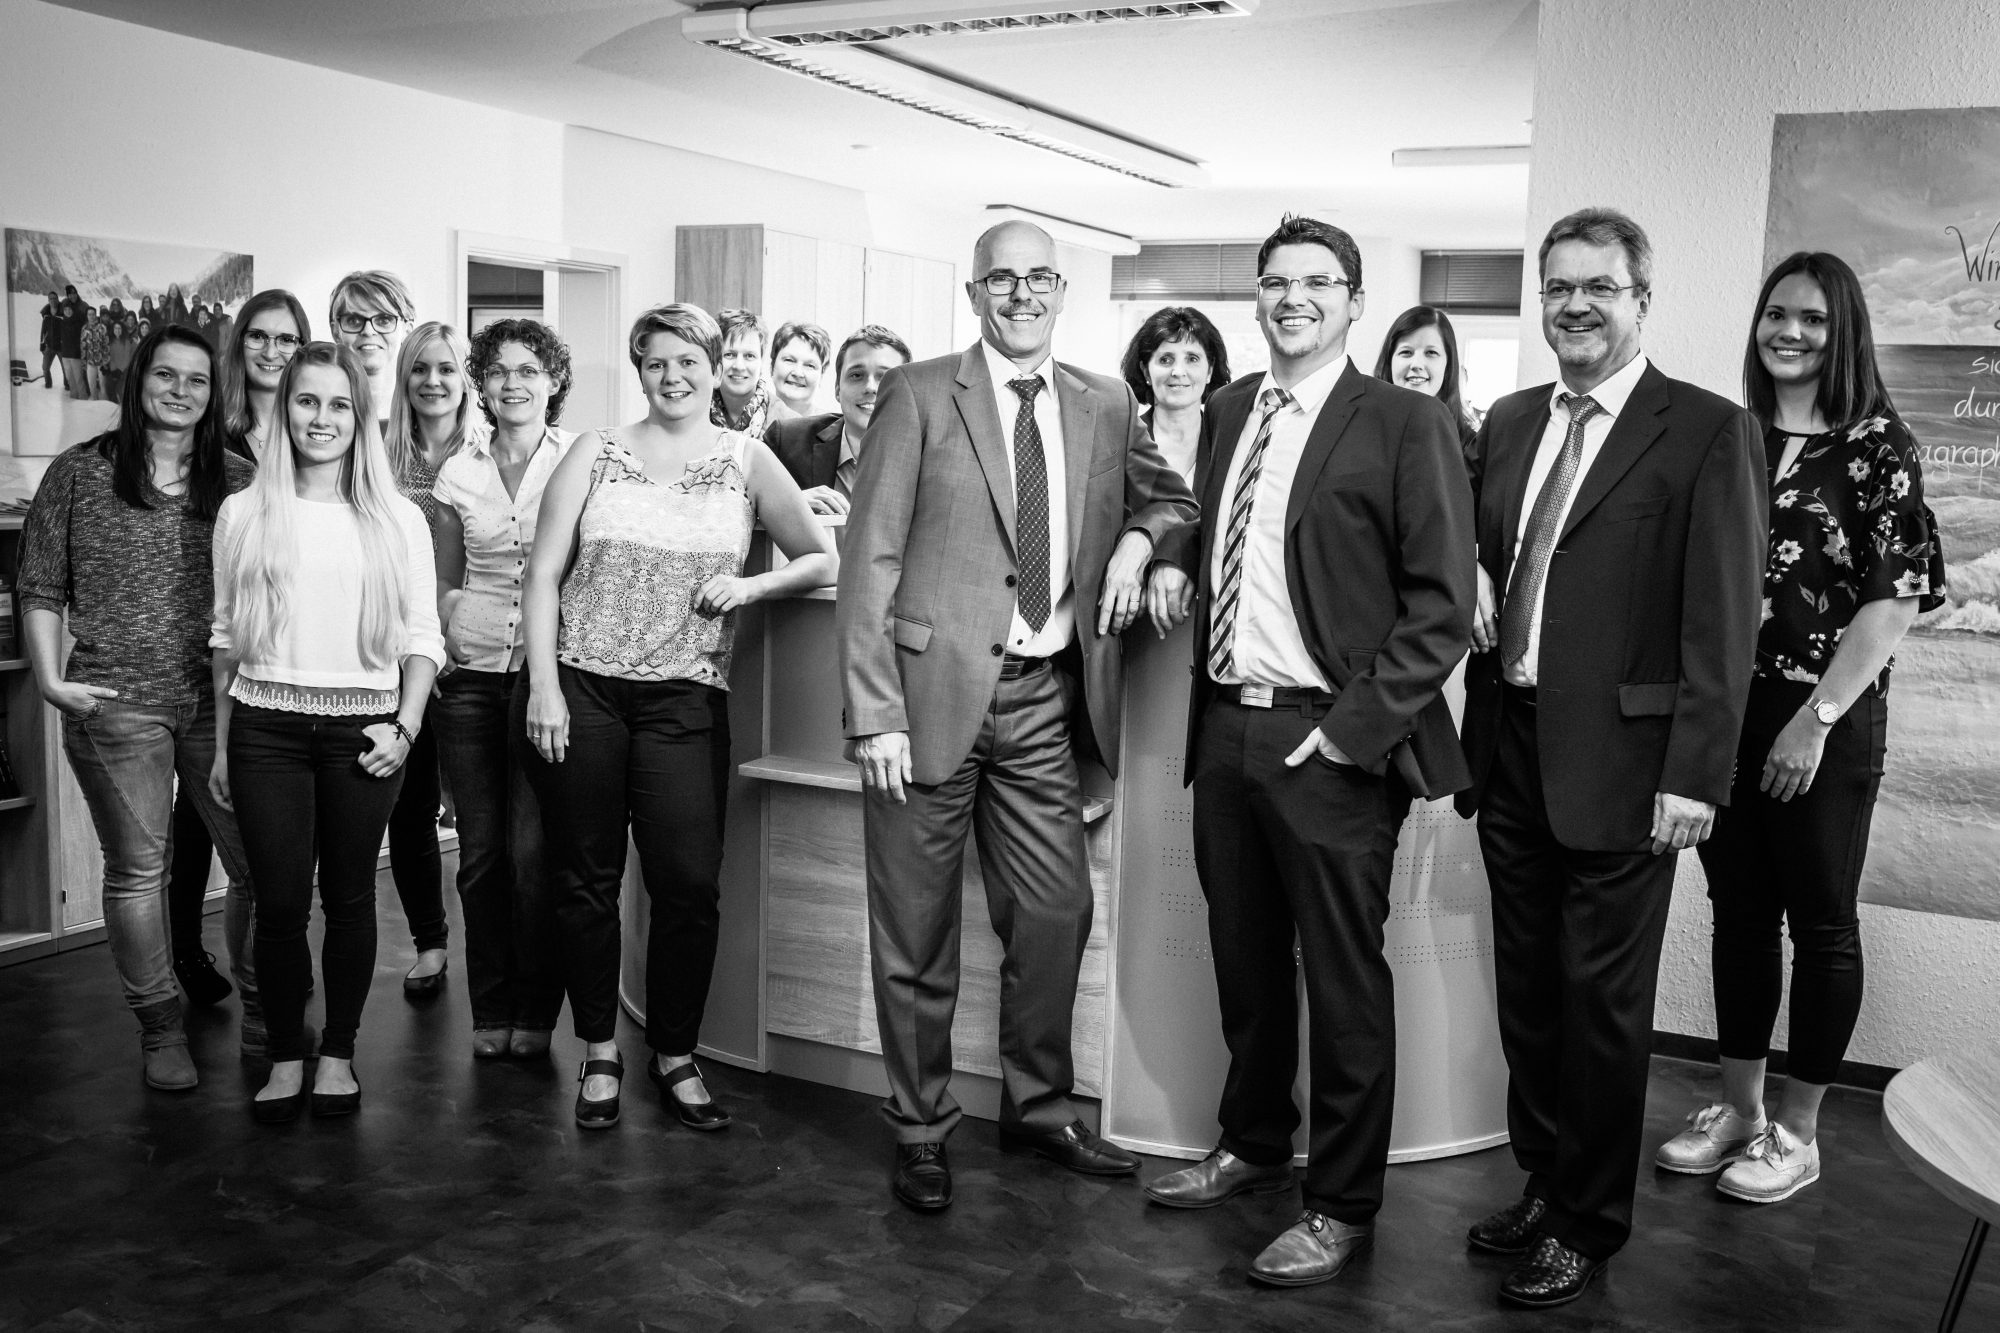 1707_LSK-Steuerberater_CorporateShooting_02-1